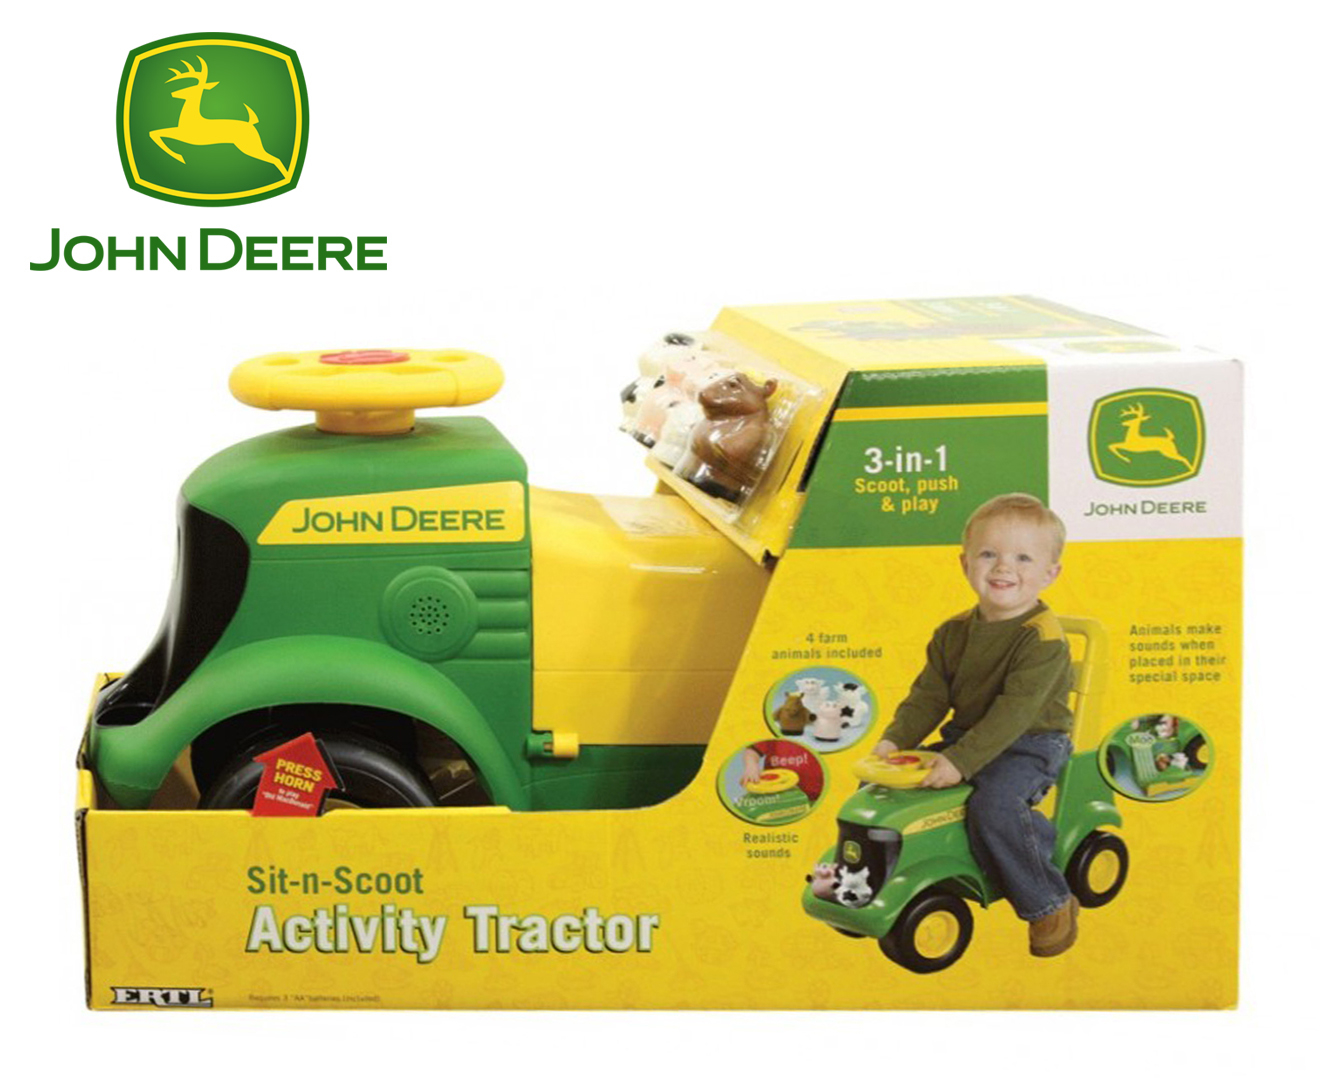 Kids Ride On Toy John Deere SitNScoot Activity Tractor New Car  Gift